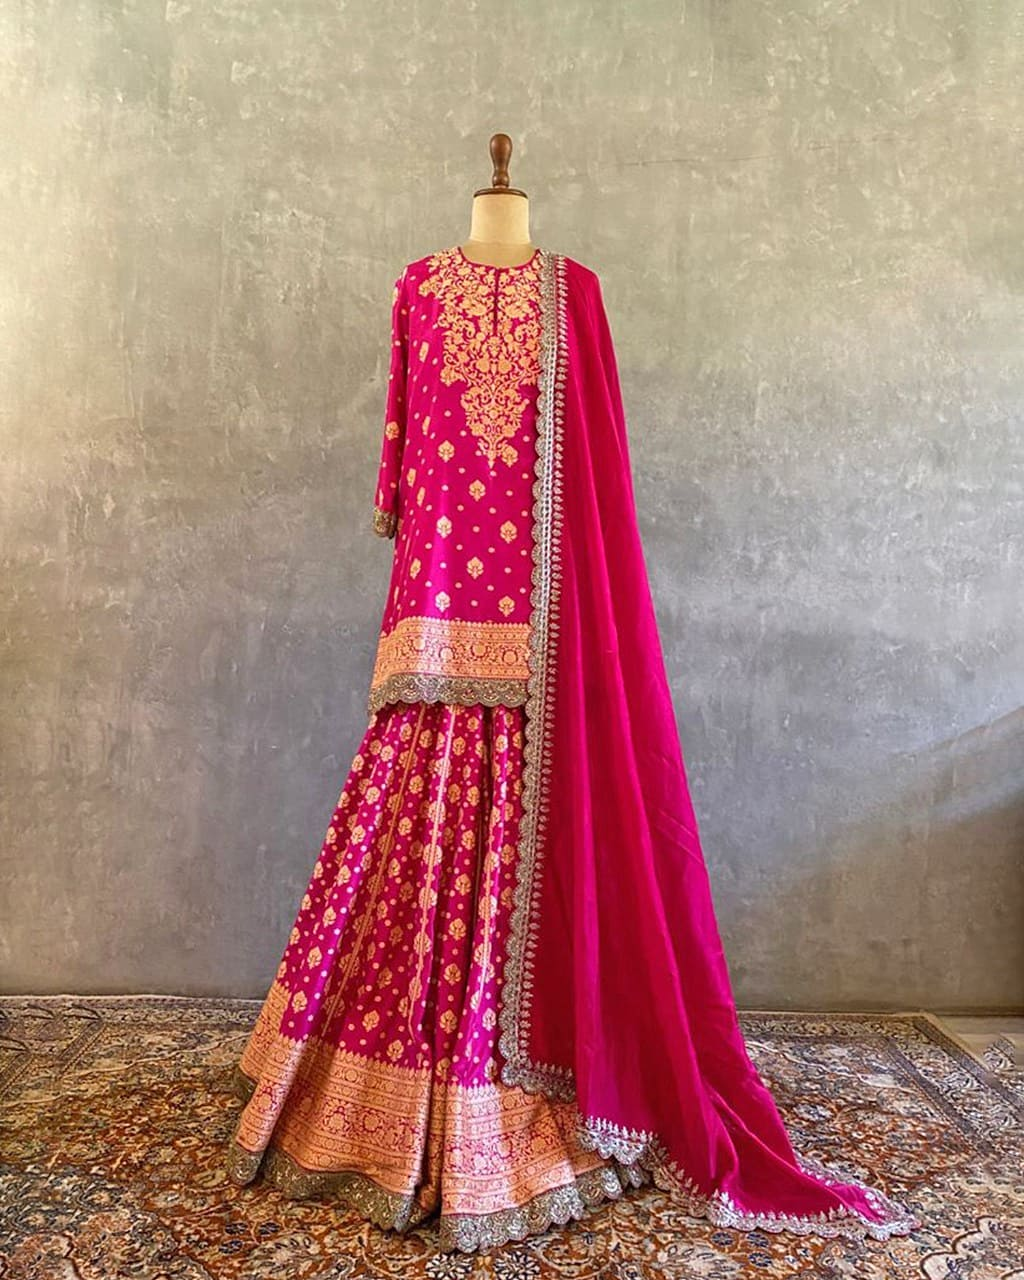 With Benares Edit we hope to capture a slice of the distinct and timeless character of a special city and bring that to designs meant for your special day! 2021-09-04